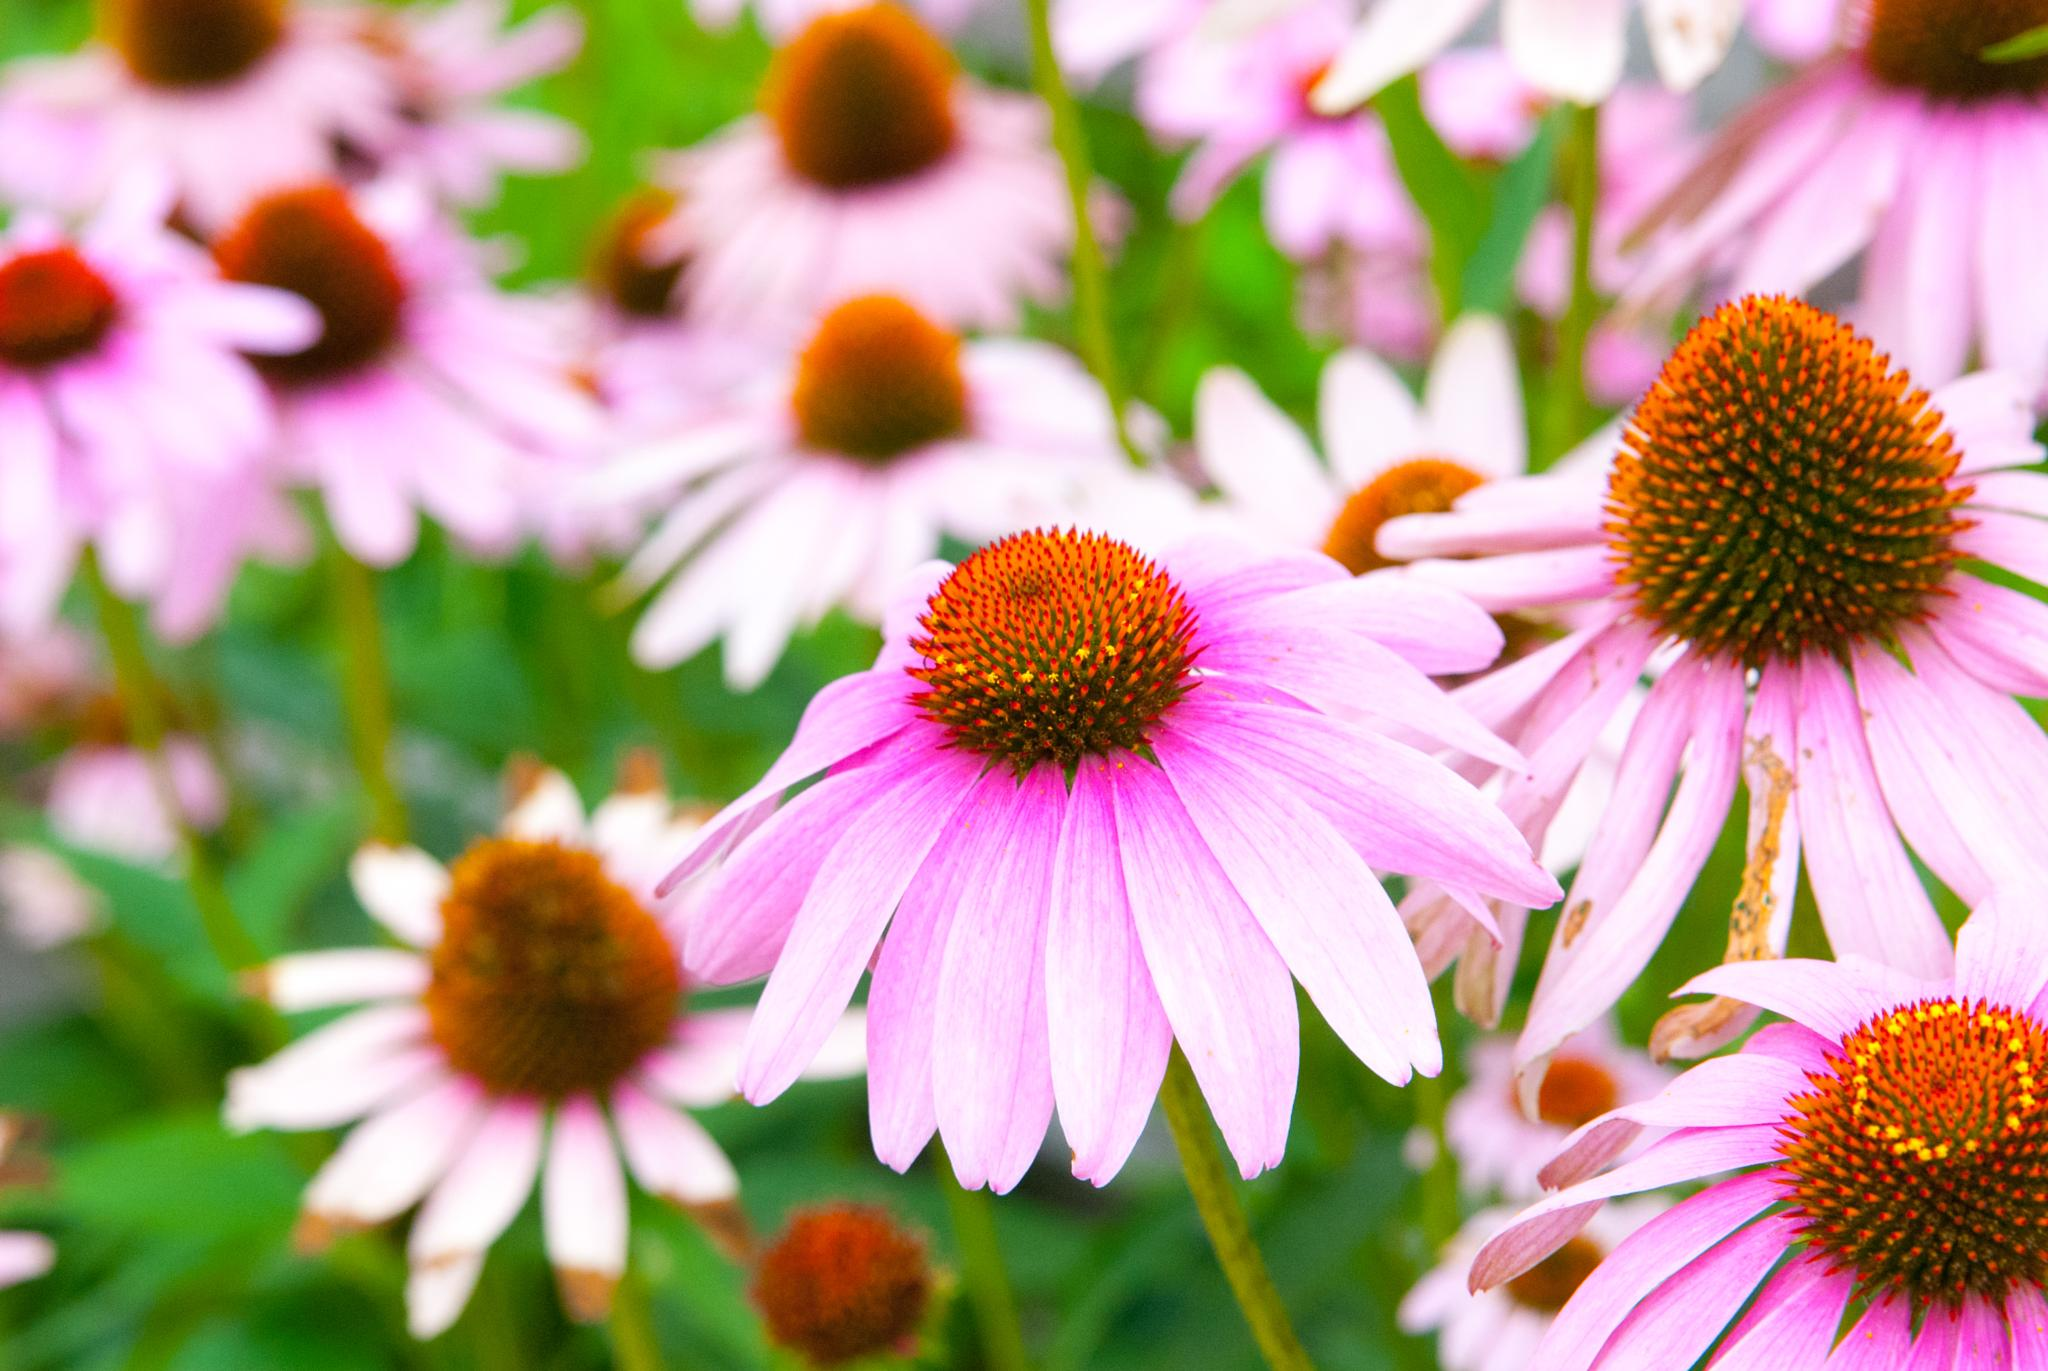 Wild FLowers by mgrphotography